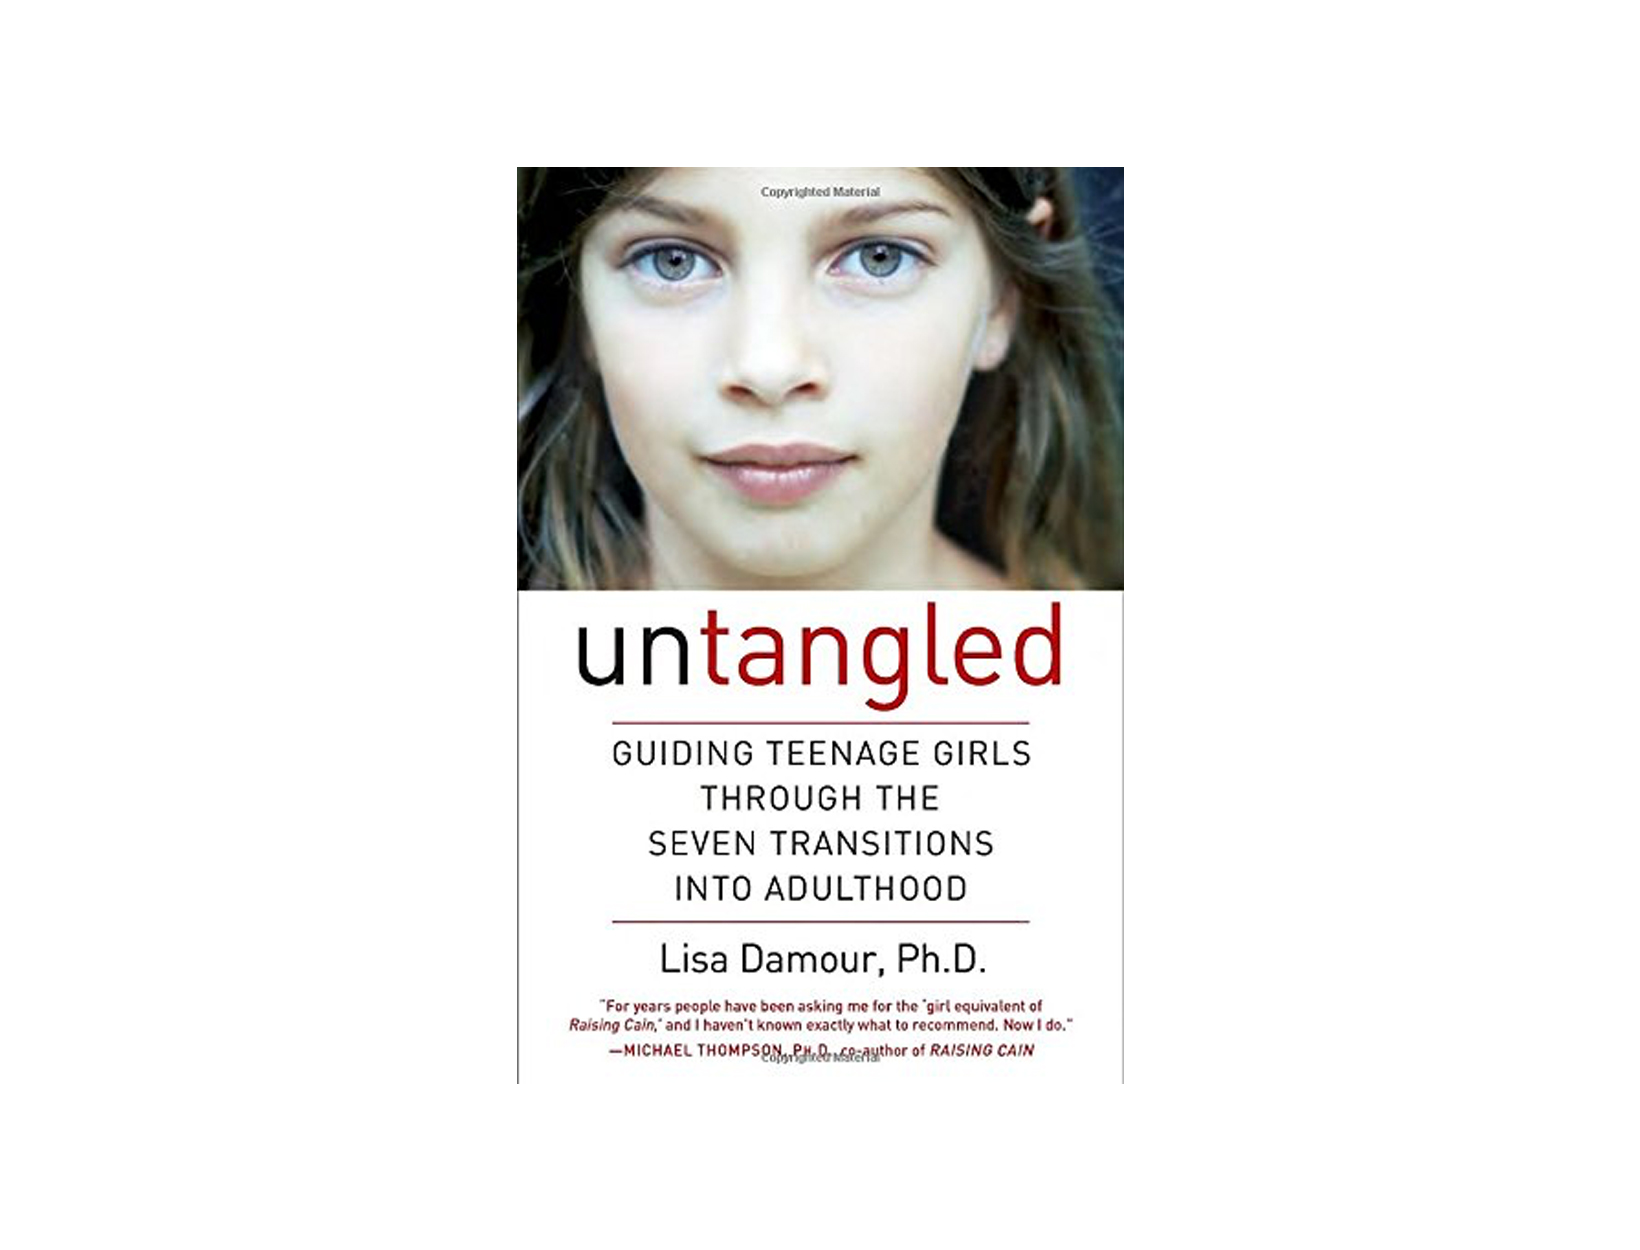 Untangled by Lisa Damour, Ph.D.